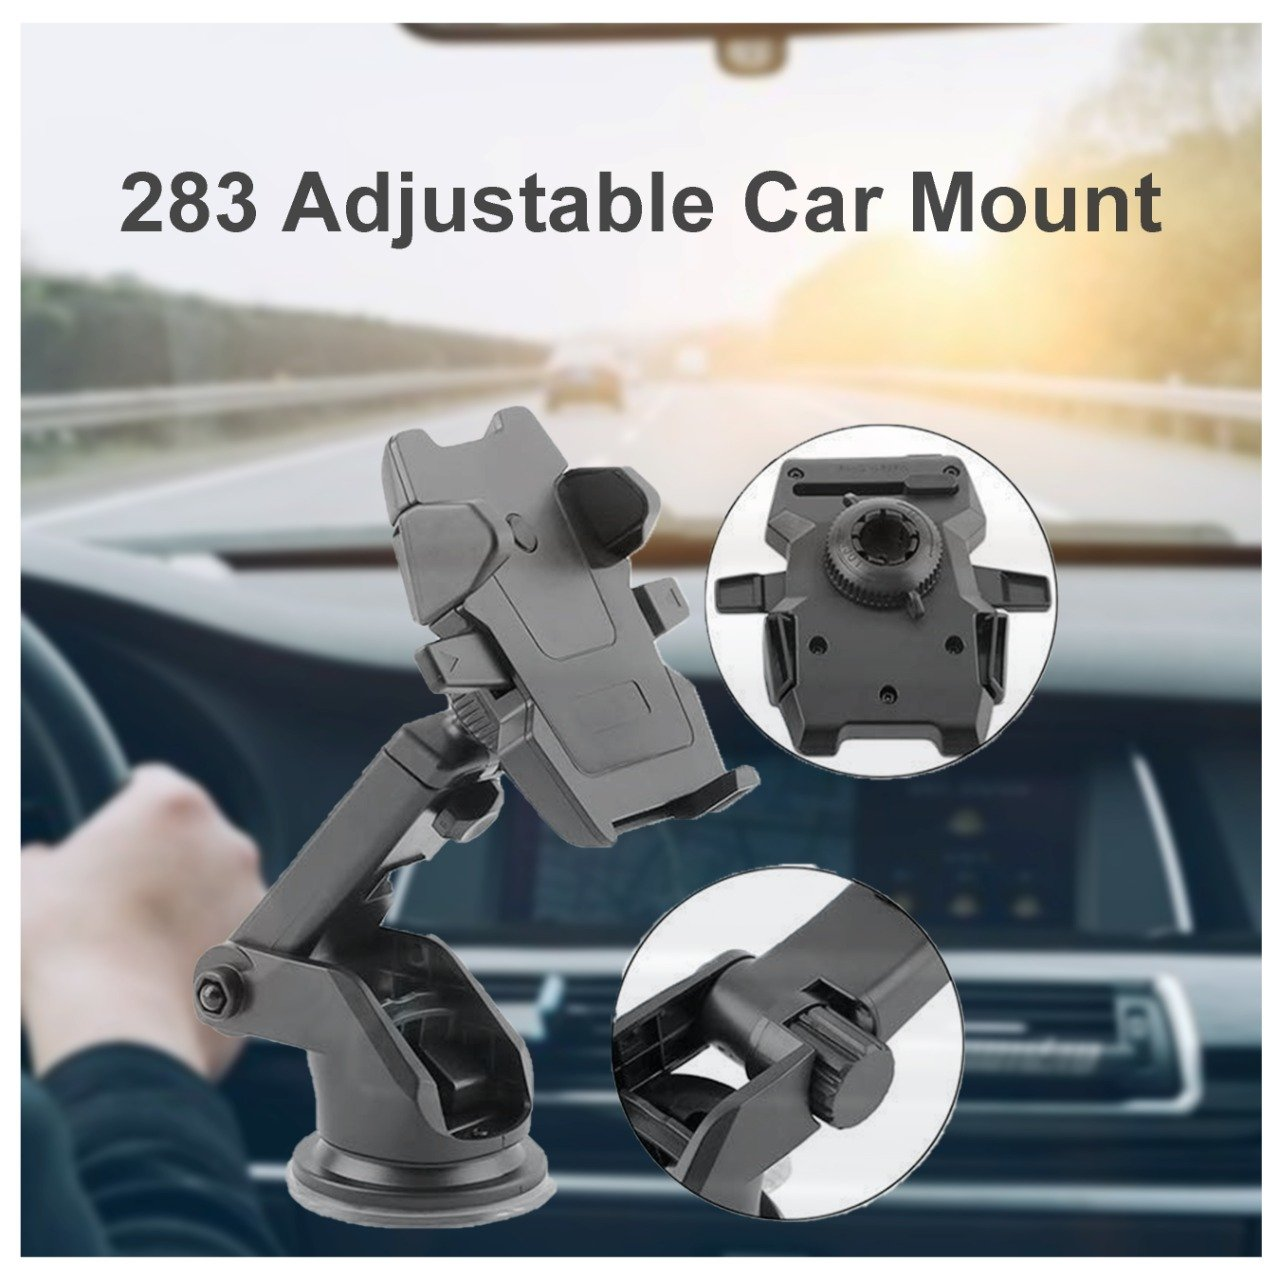 283 Adjustable Car Mount (Multicolour)